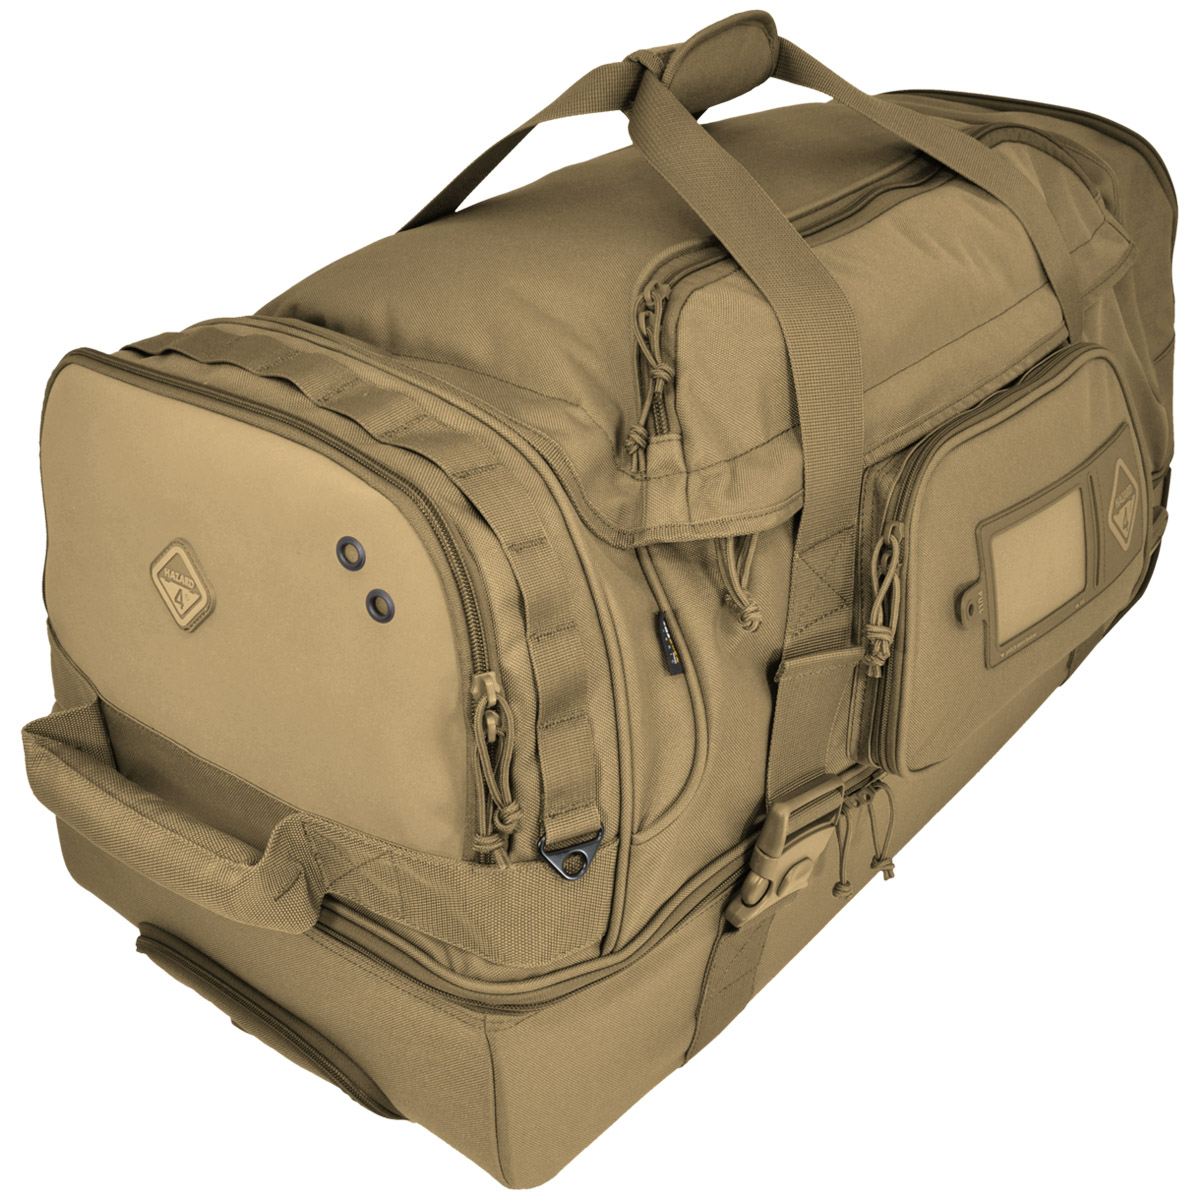 Luggage and Travel Bags UK | Military 1st